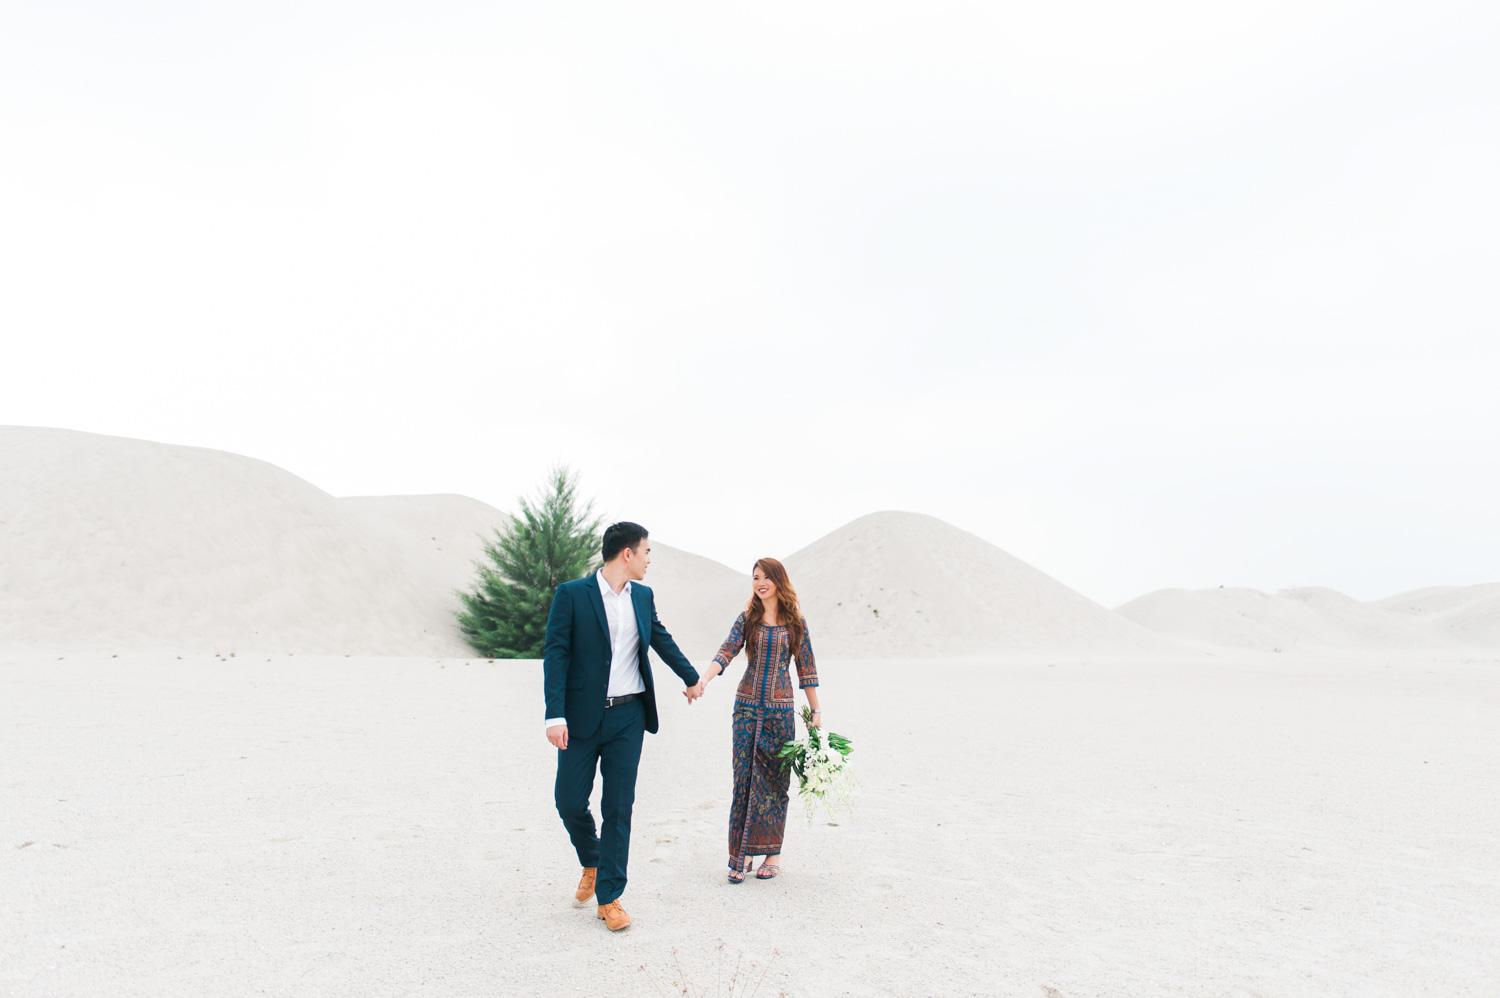 melaka-singapore-desert-themed-pre-wedding-engagement-singapore-airlines-uniform-reference